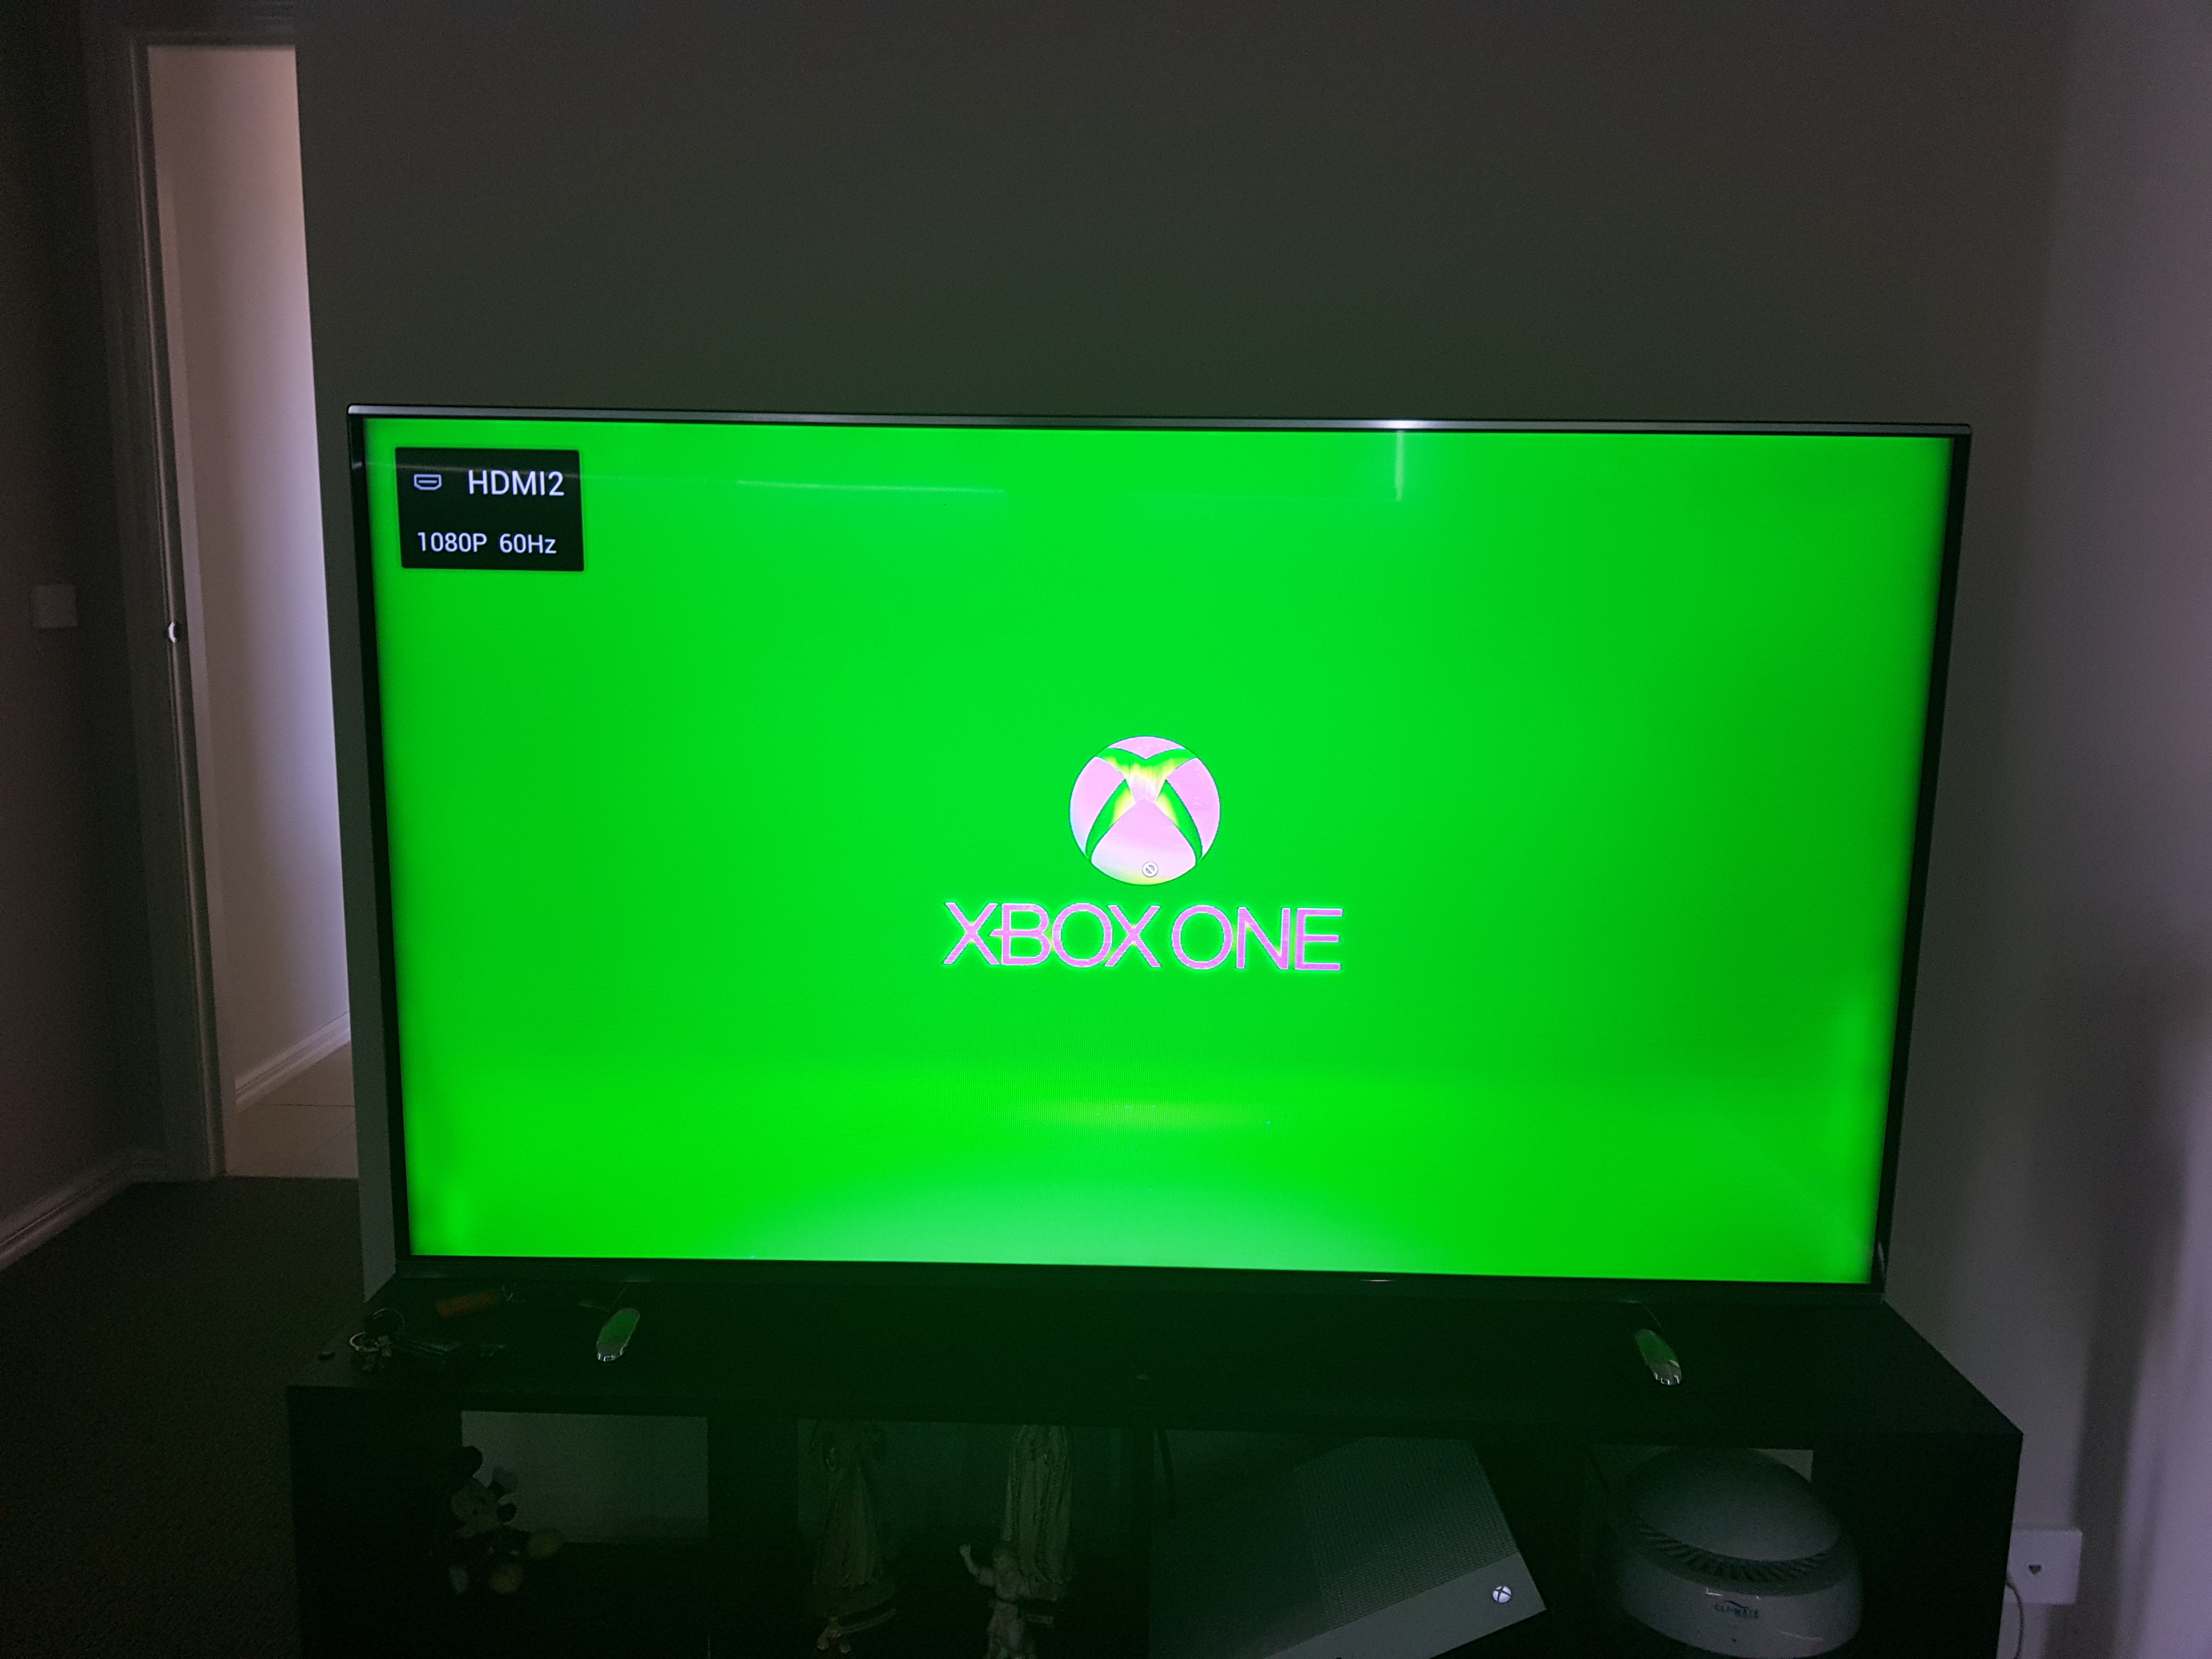 Blue lines on the screen xbox one s - Microsoft Community